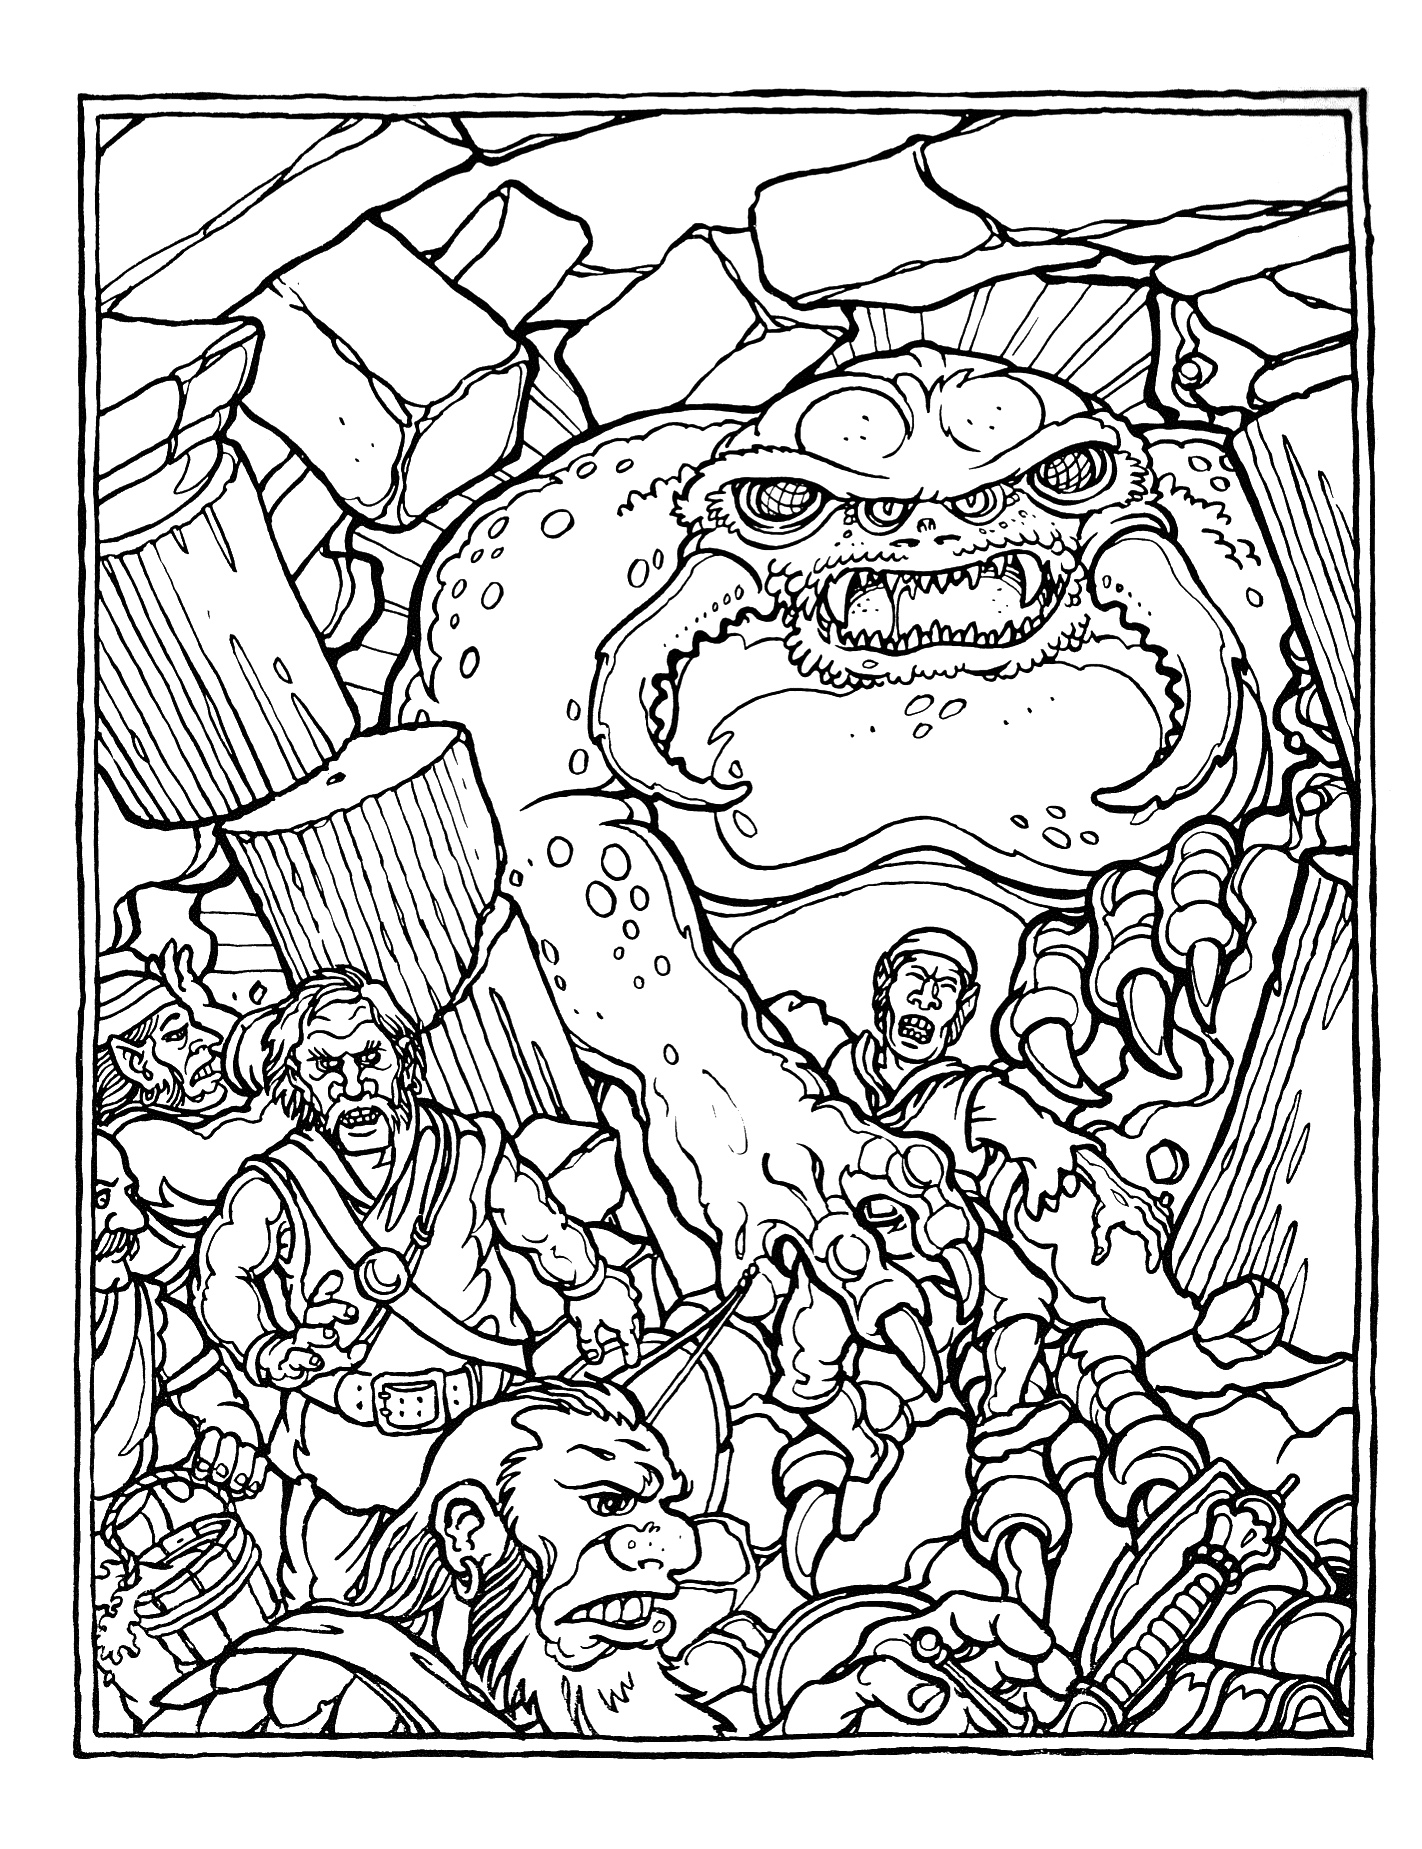 dungeons and dragons coloring pages - photo#4